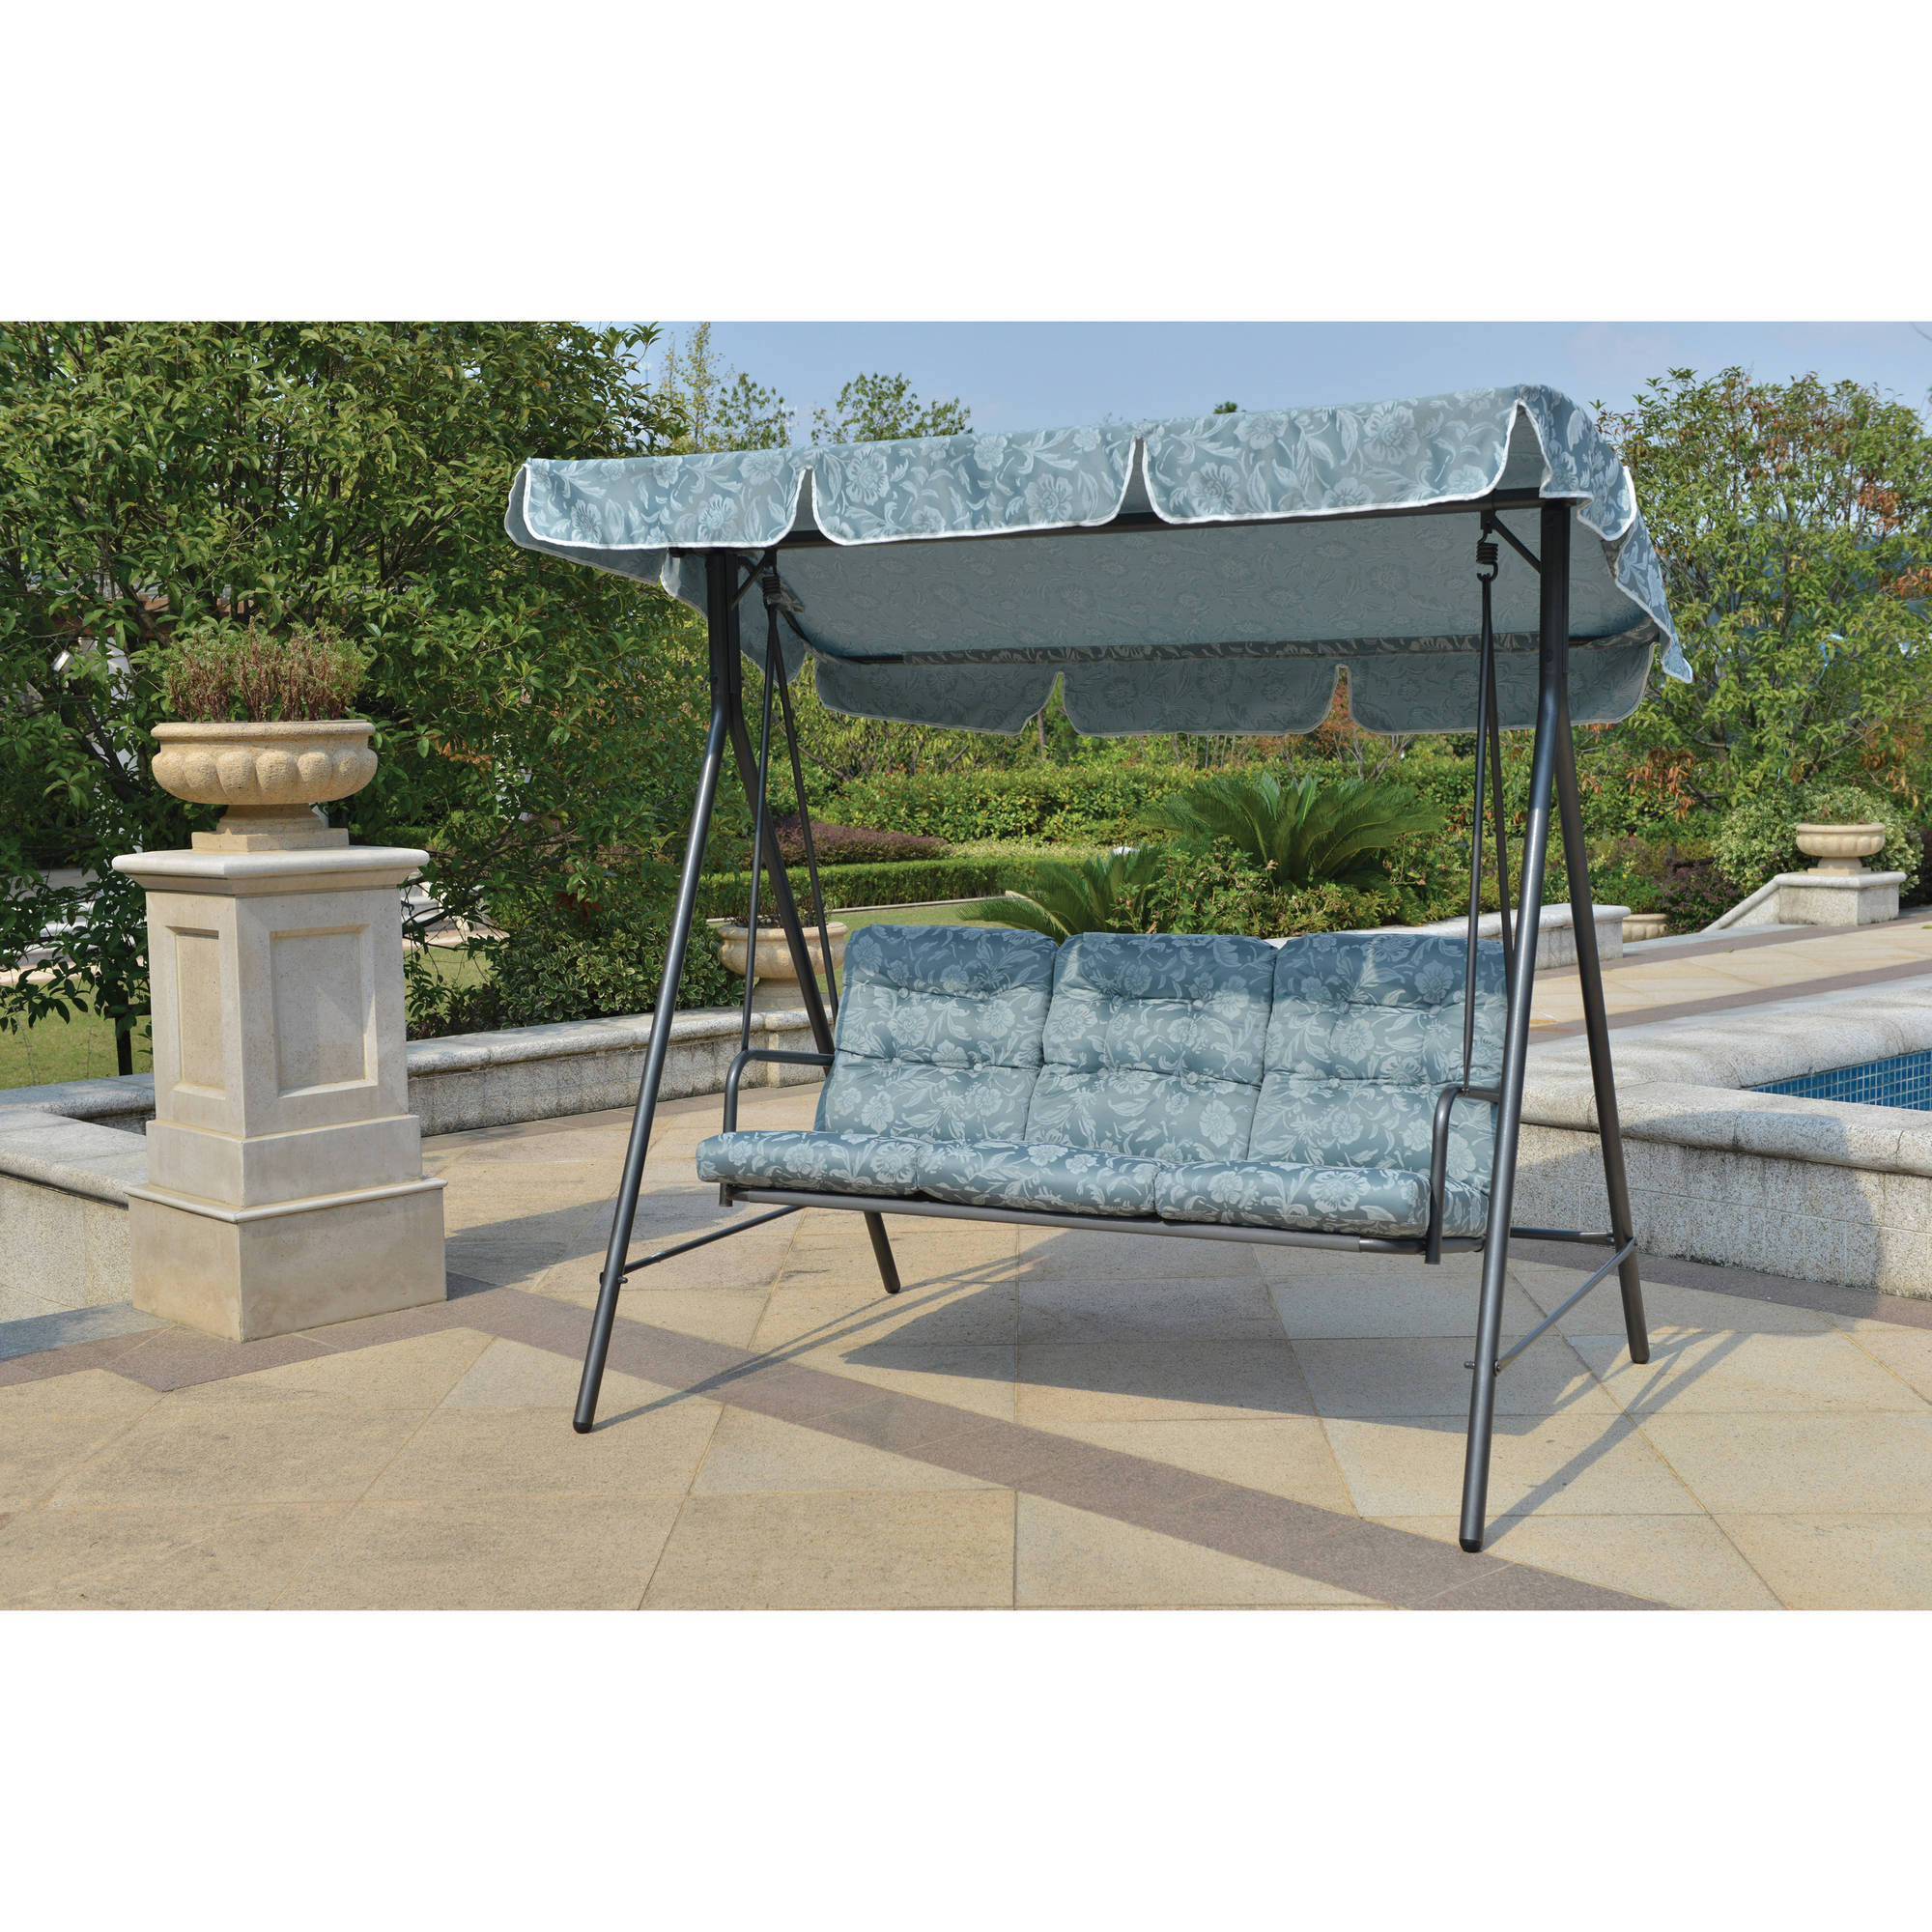 Mainstays Willow Springs Outdoor Swing, Blue, Seats 3